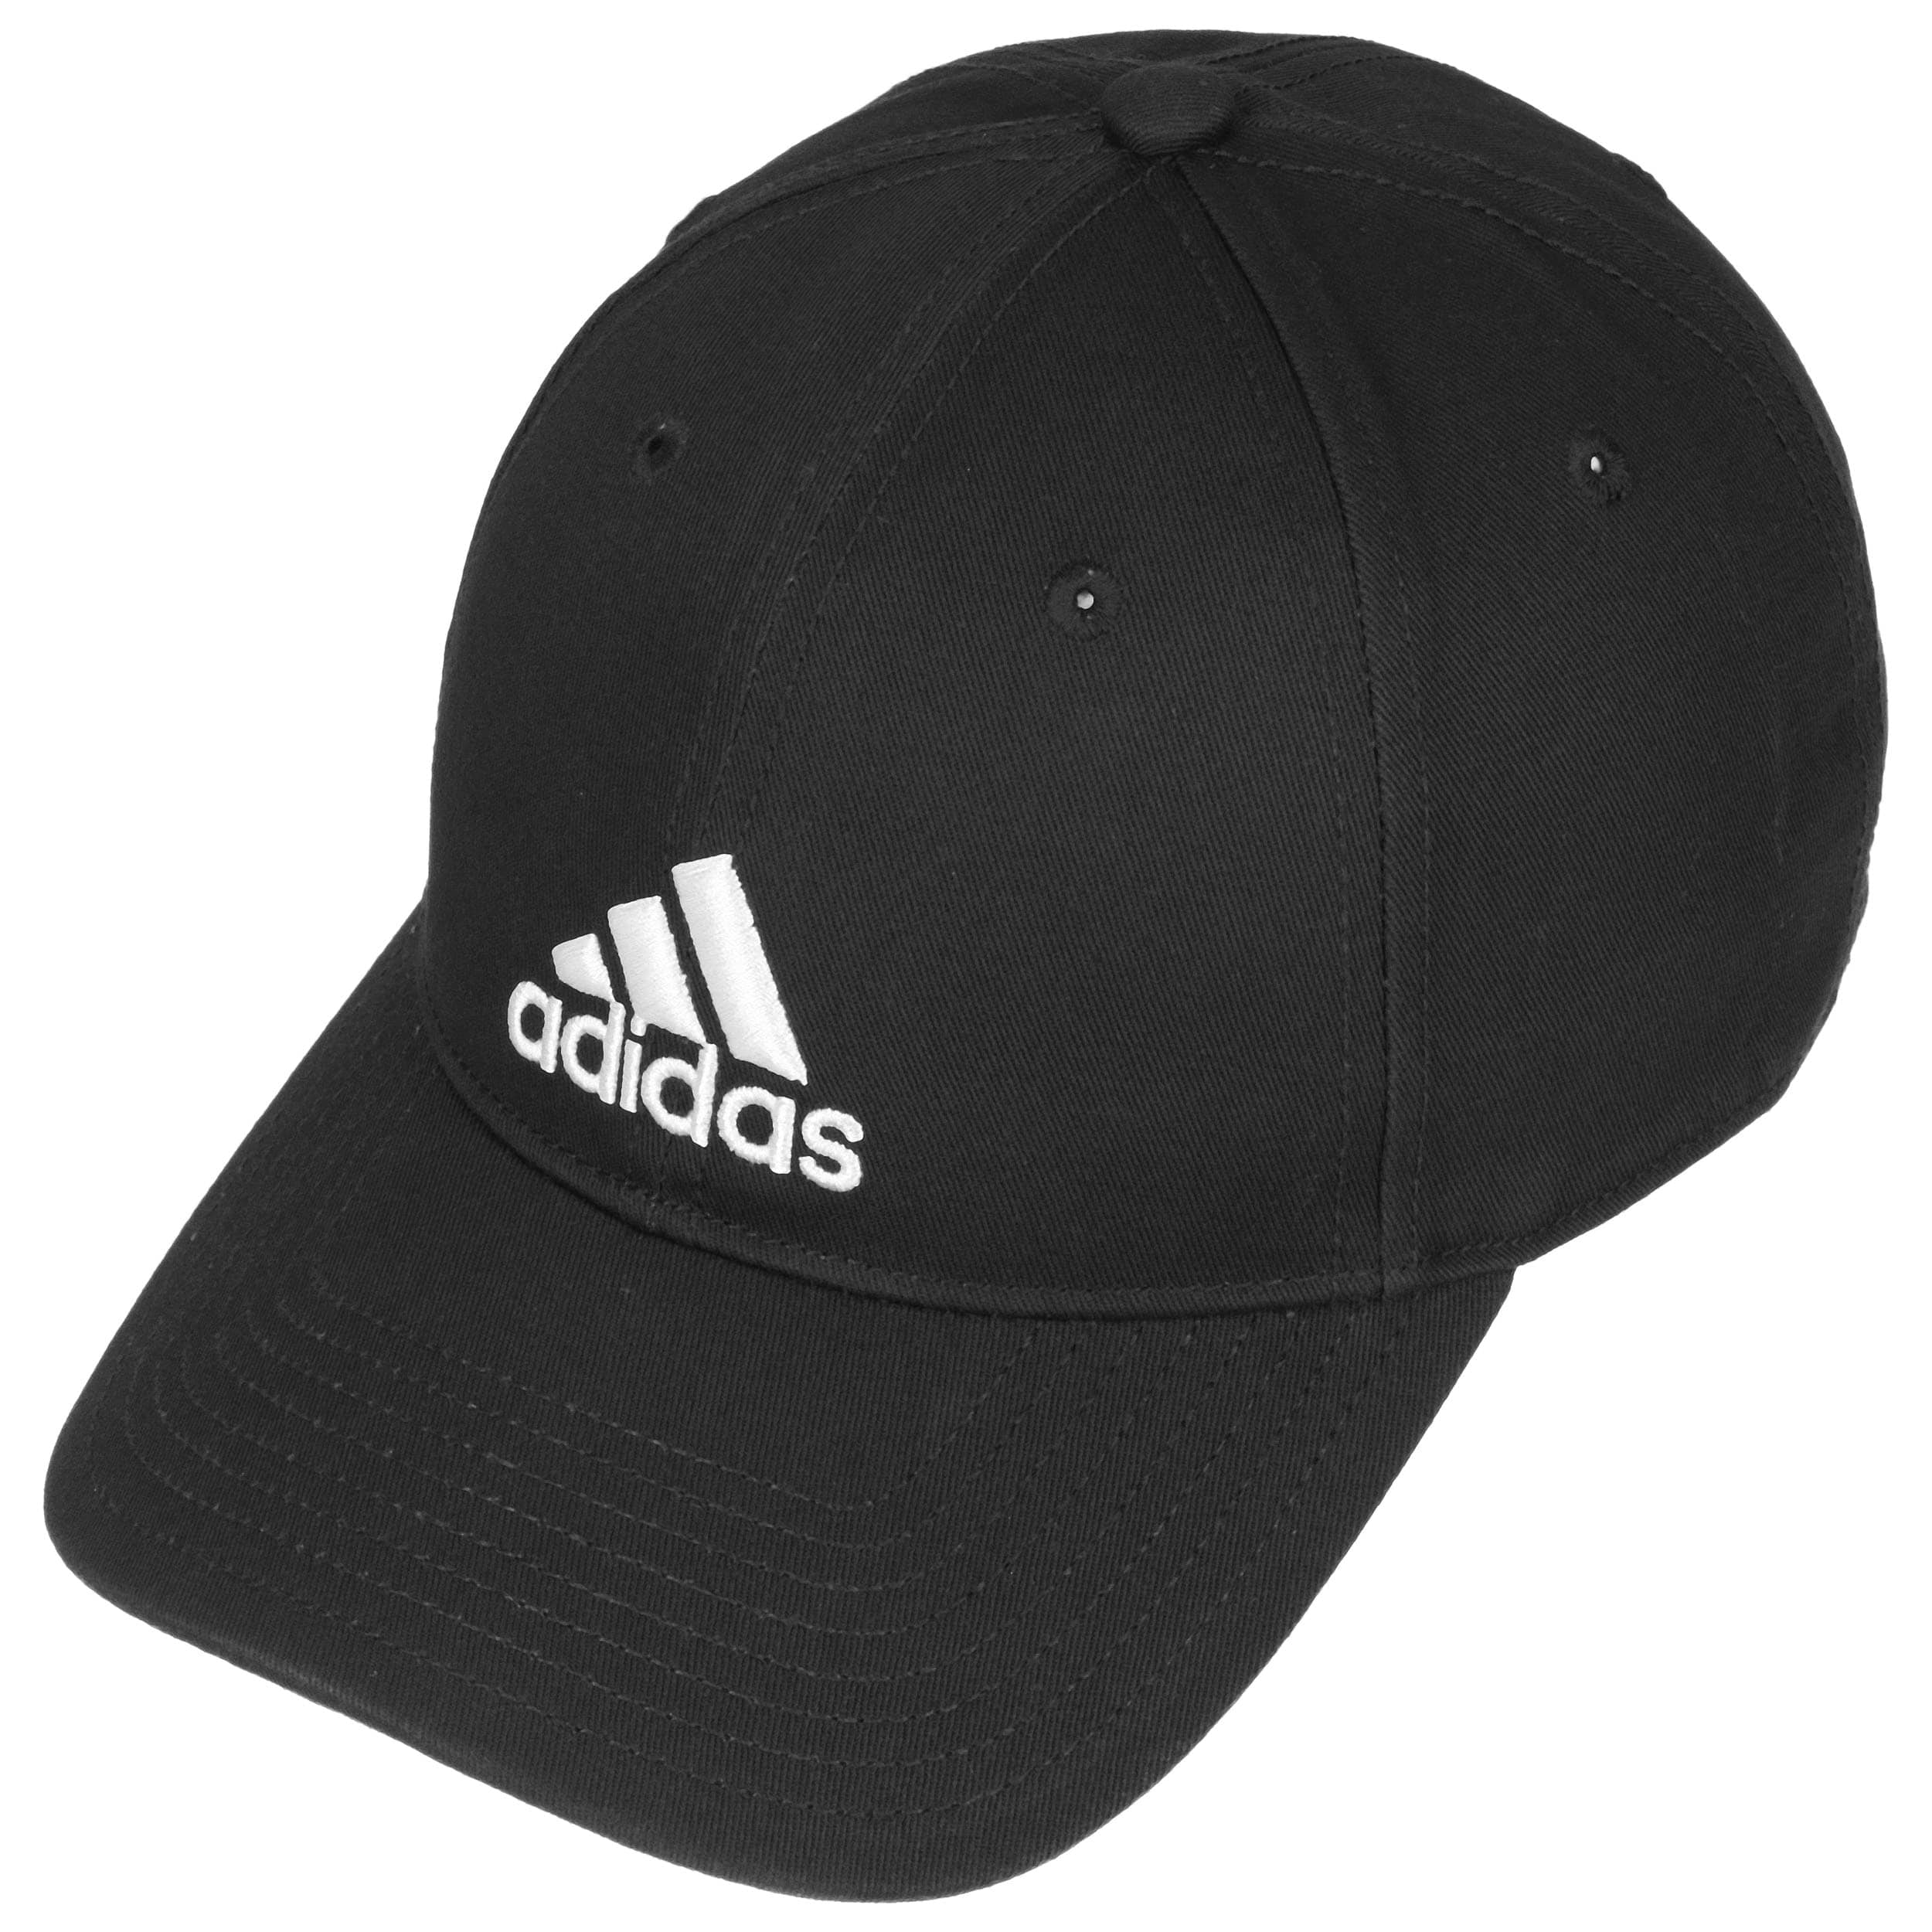 ... rosso bordeaux 1 · Cappellino 6P Classic Cotton by adidas - nero 1 ... f1df2ee3d135